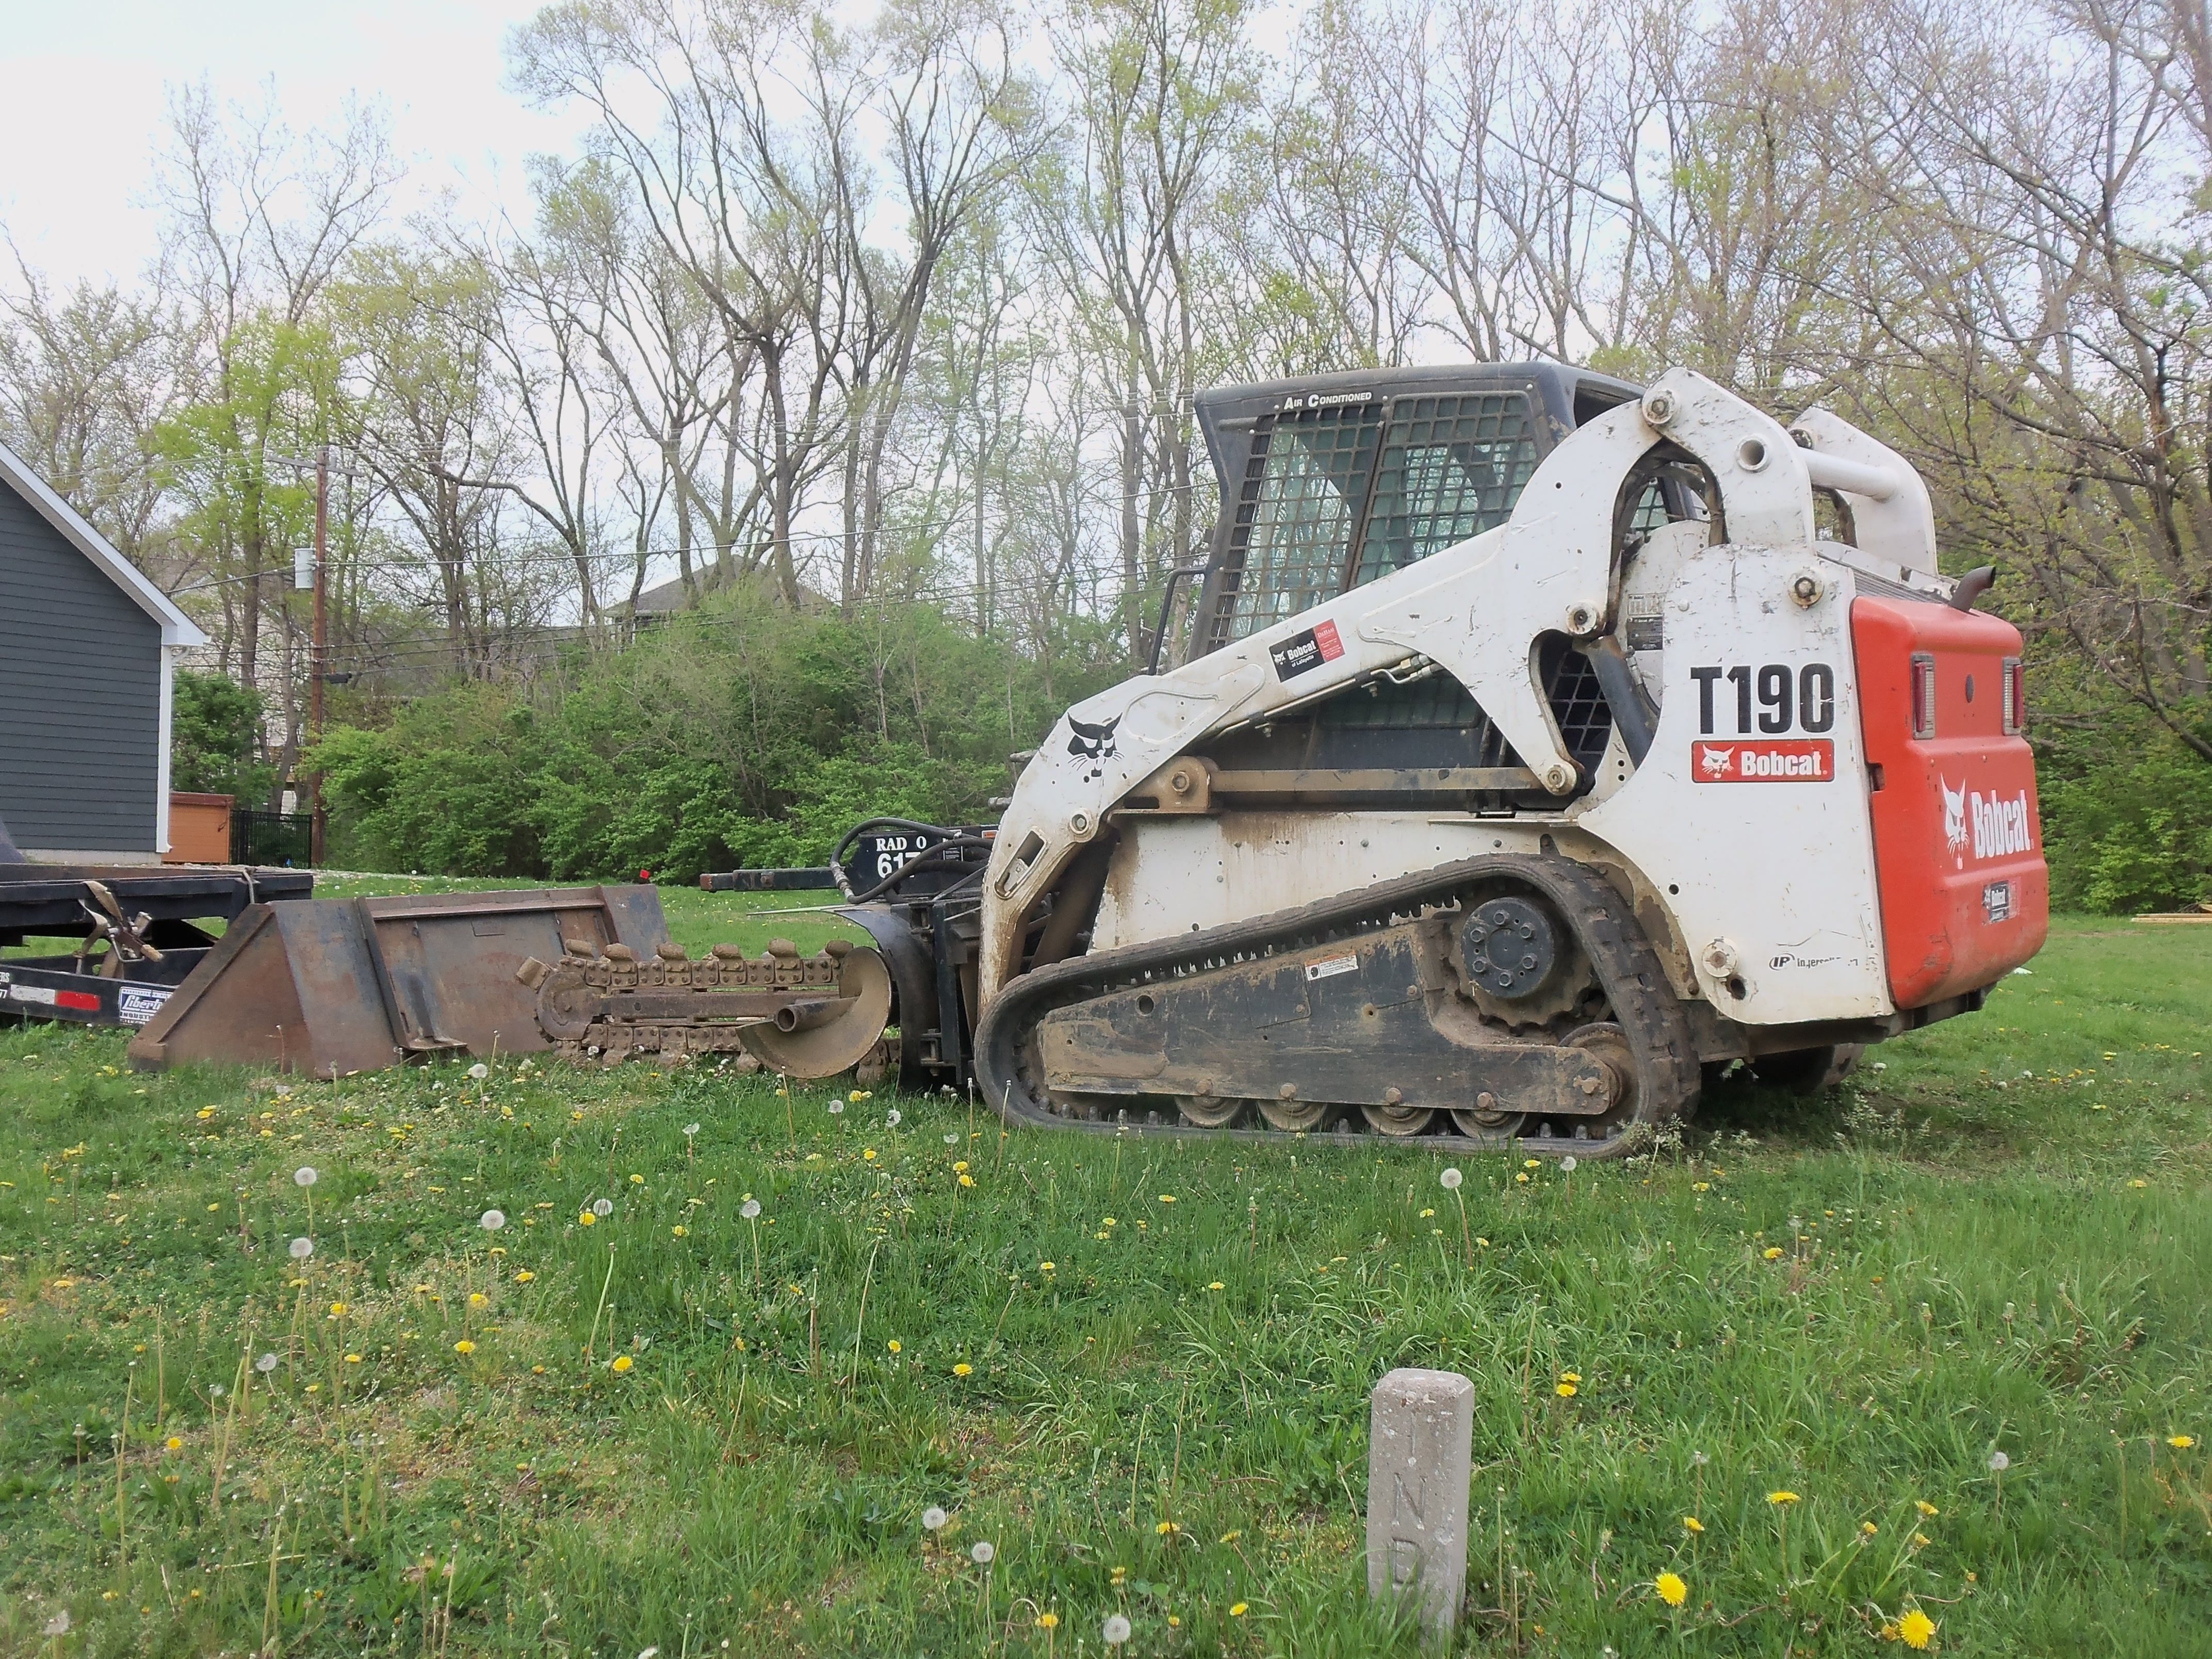 bobcat skid steer loader specifications lawn mowers